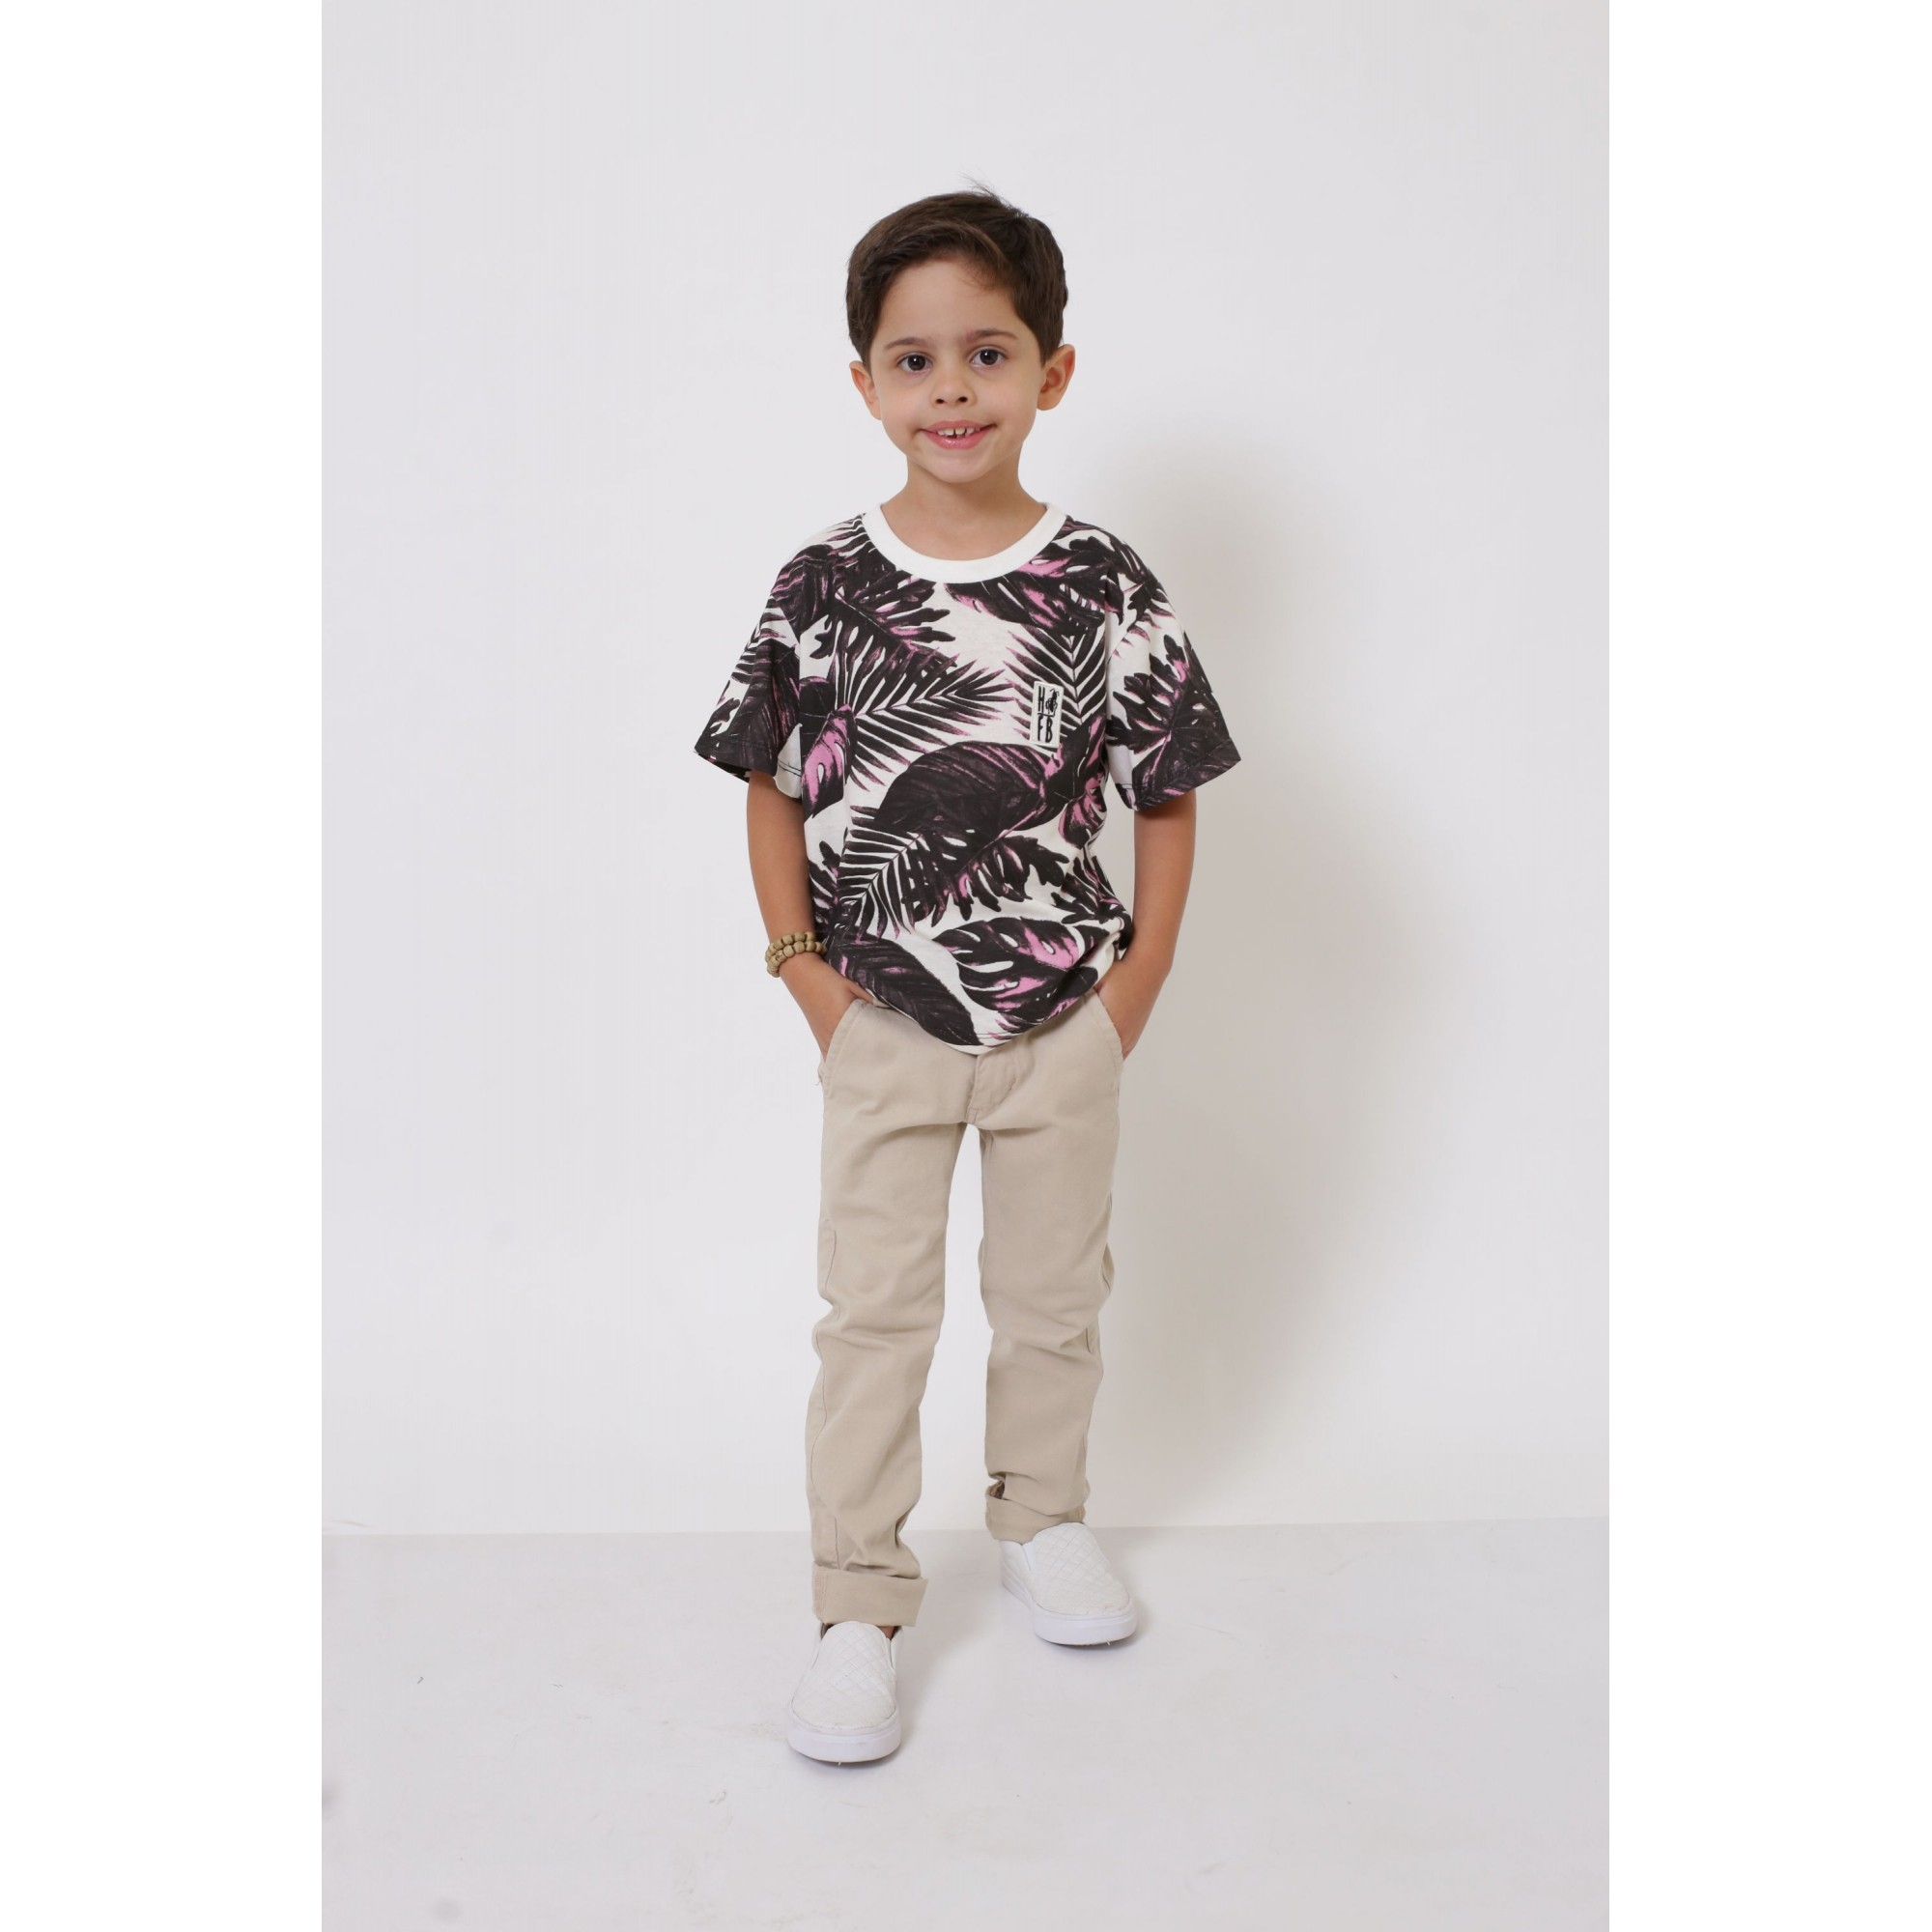 Camiseta ou Body Infantil Unissex - Cancún  - Heitor Fashion Brazil